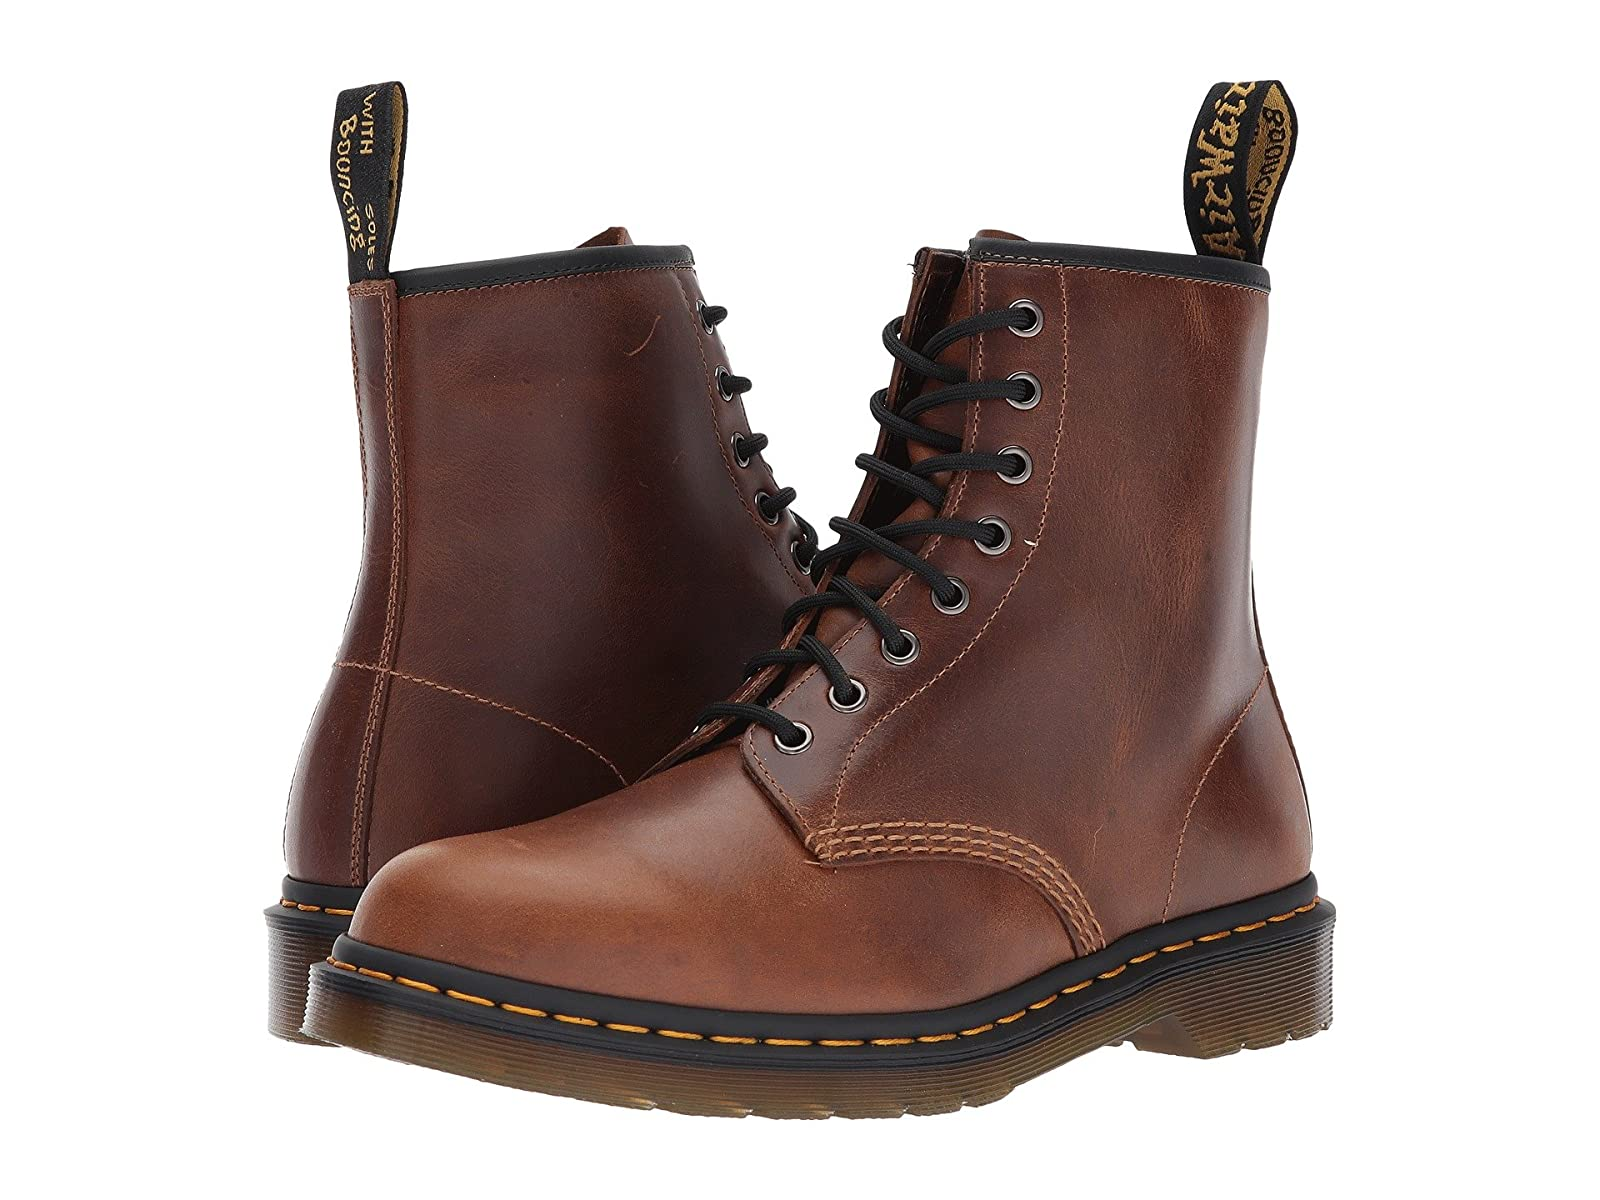 Dr. Martens 1460 8-Eye BootAffordable and distinctive shoes